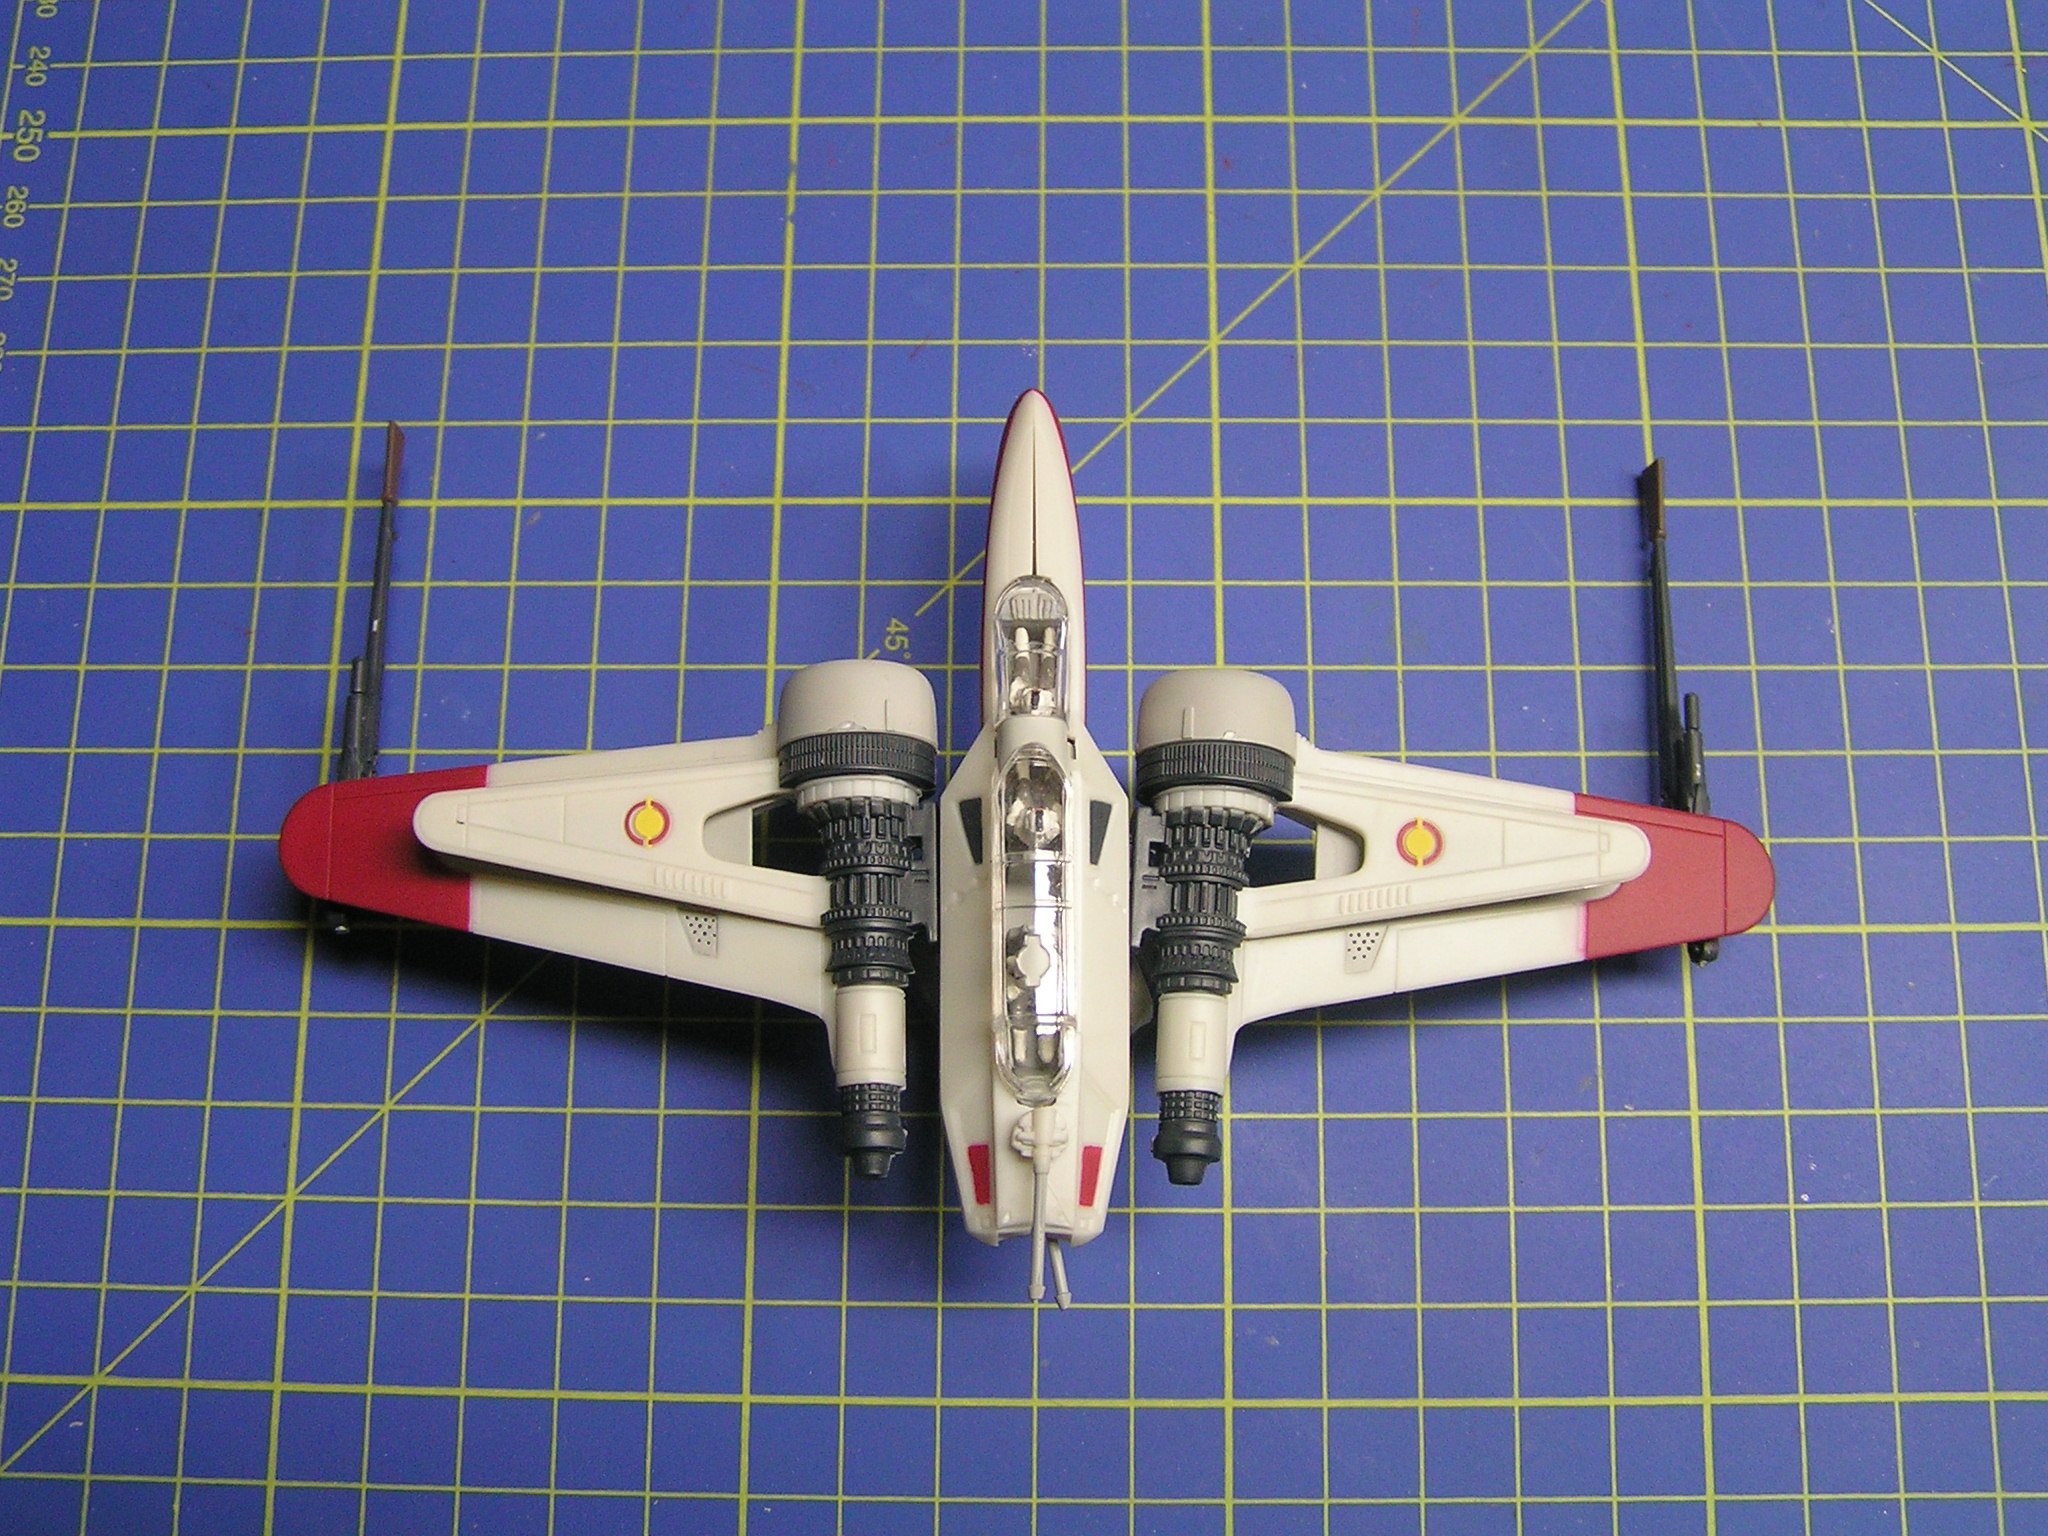 model Aggressive ReConnaissance-170 starfighter Star Wars ACR-170 revell 1:83 easy pocket